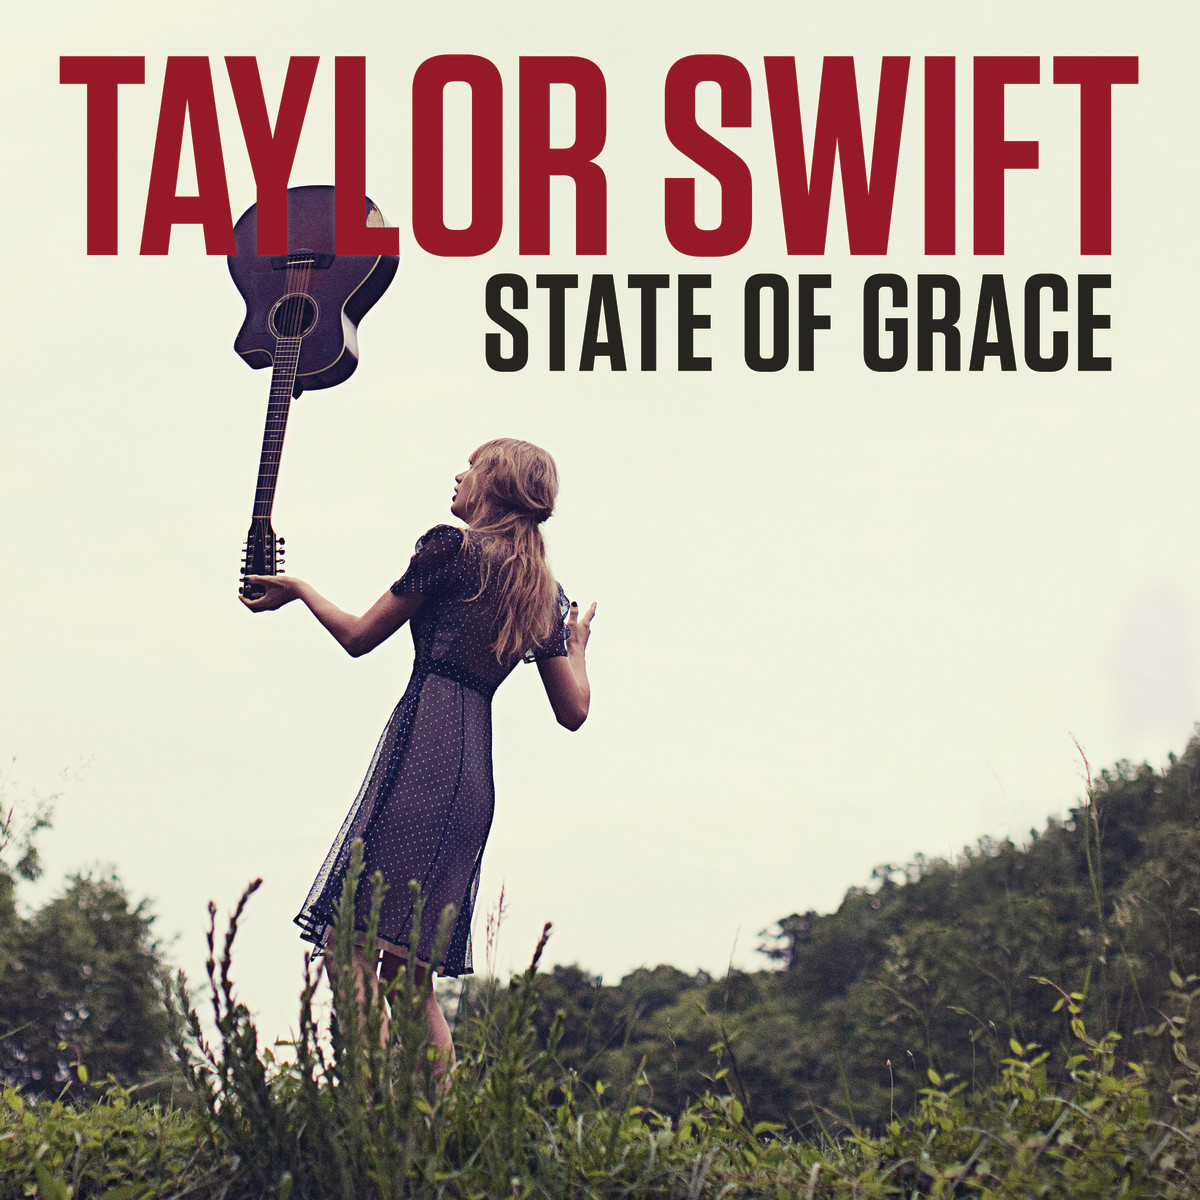 Taylor swift state of grace guitar chords guitar chords taylor swift state of grace guitar chords hexwebz Choice Image